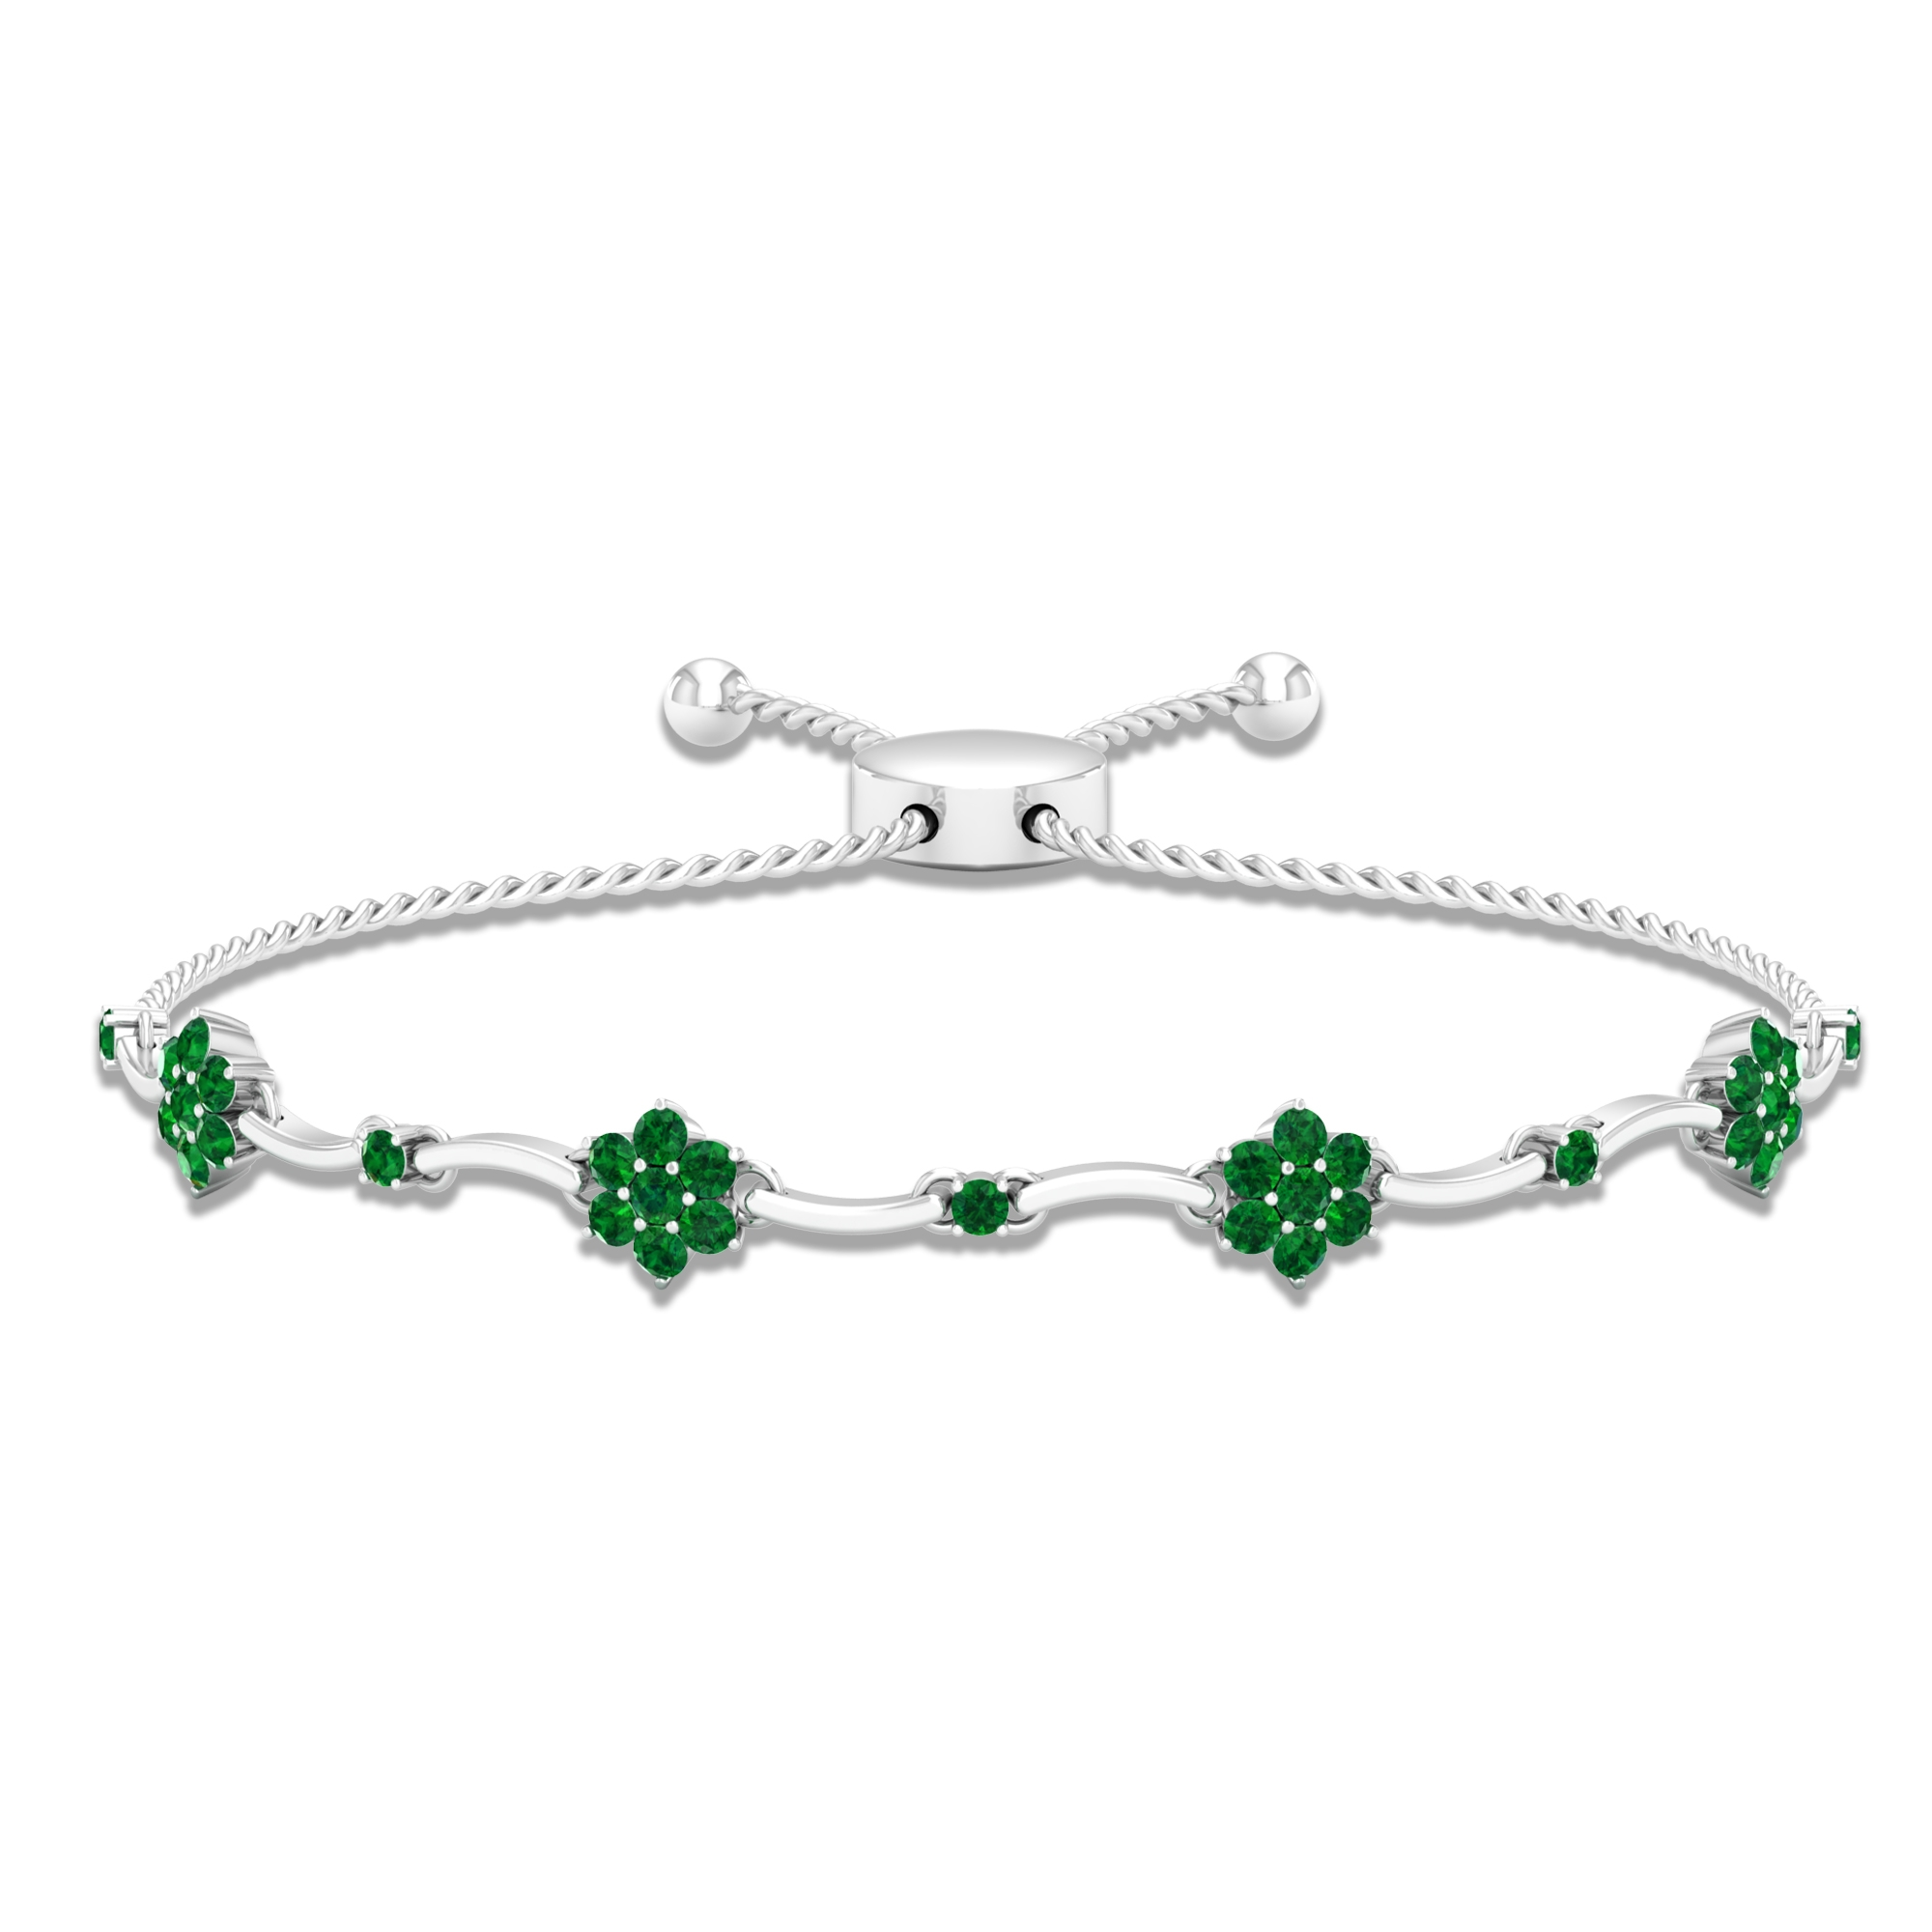 1.25 CT Round Cut Emerald Bolo Bracelet in Prong Setting